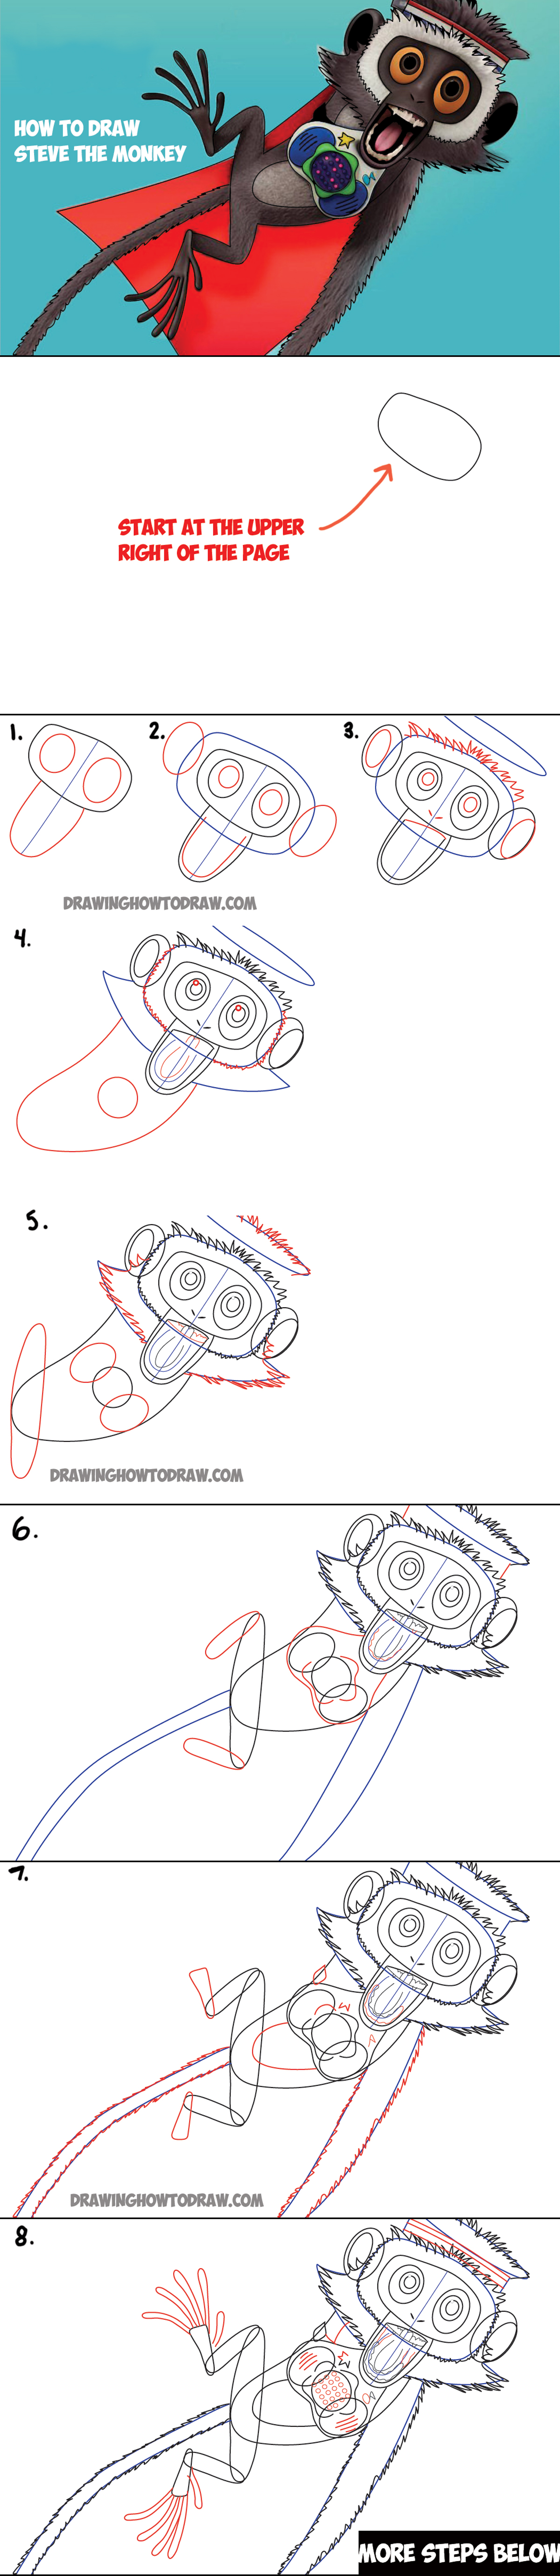 How to Draw Steve the Monkey from Cloudy with the Chance of Meatballs